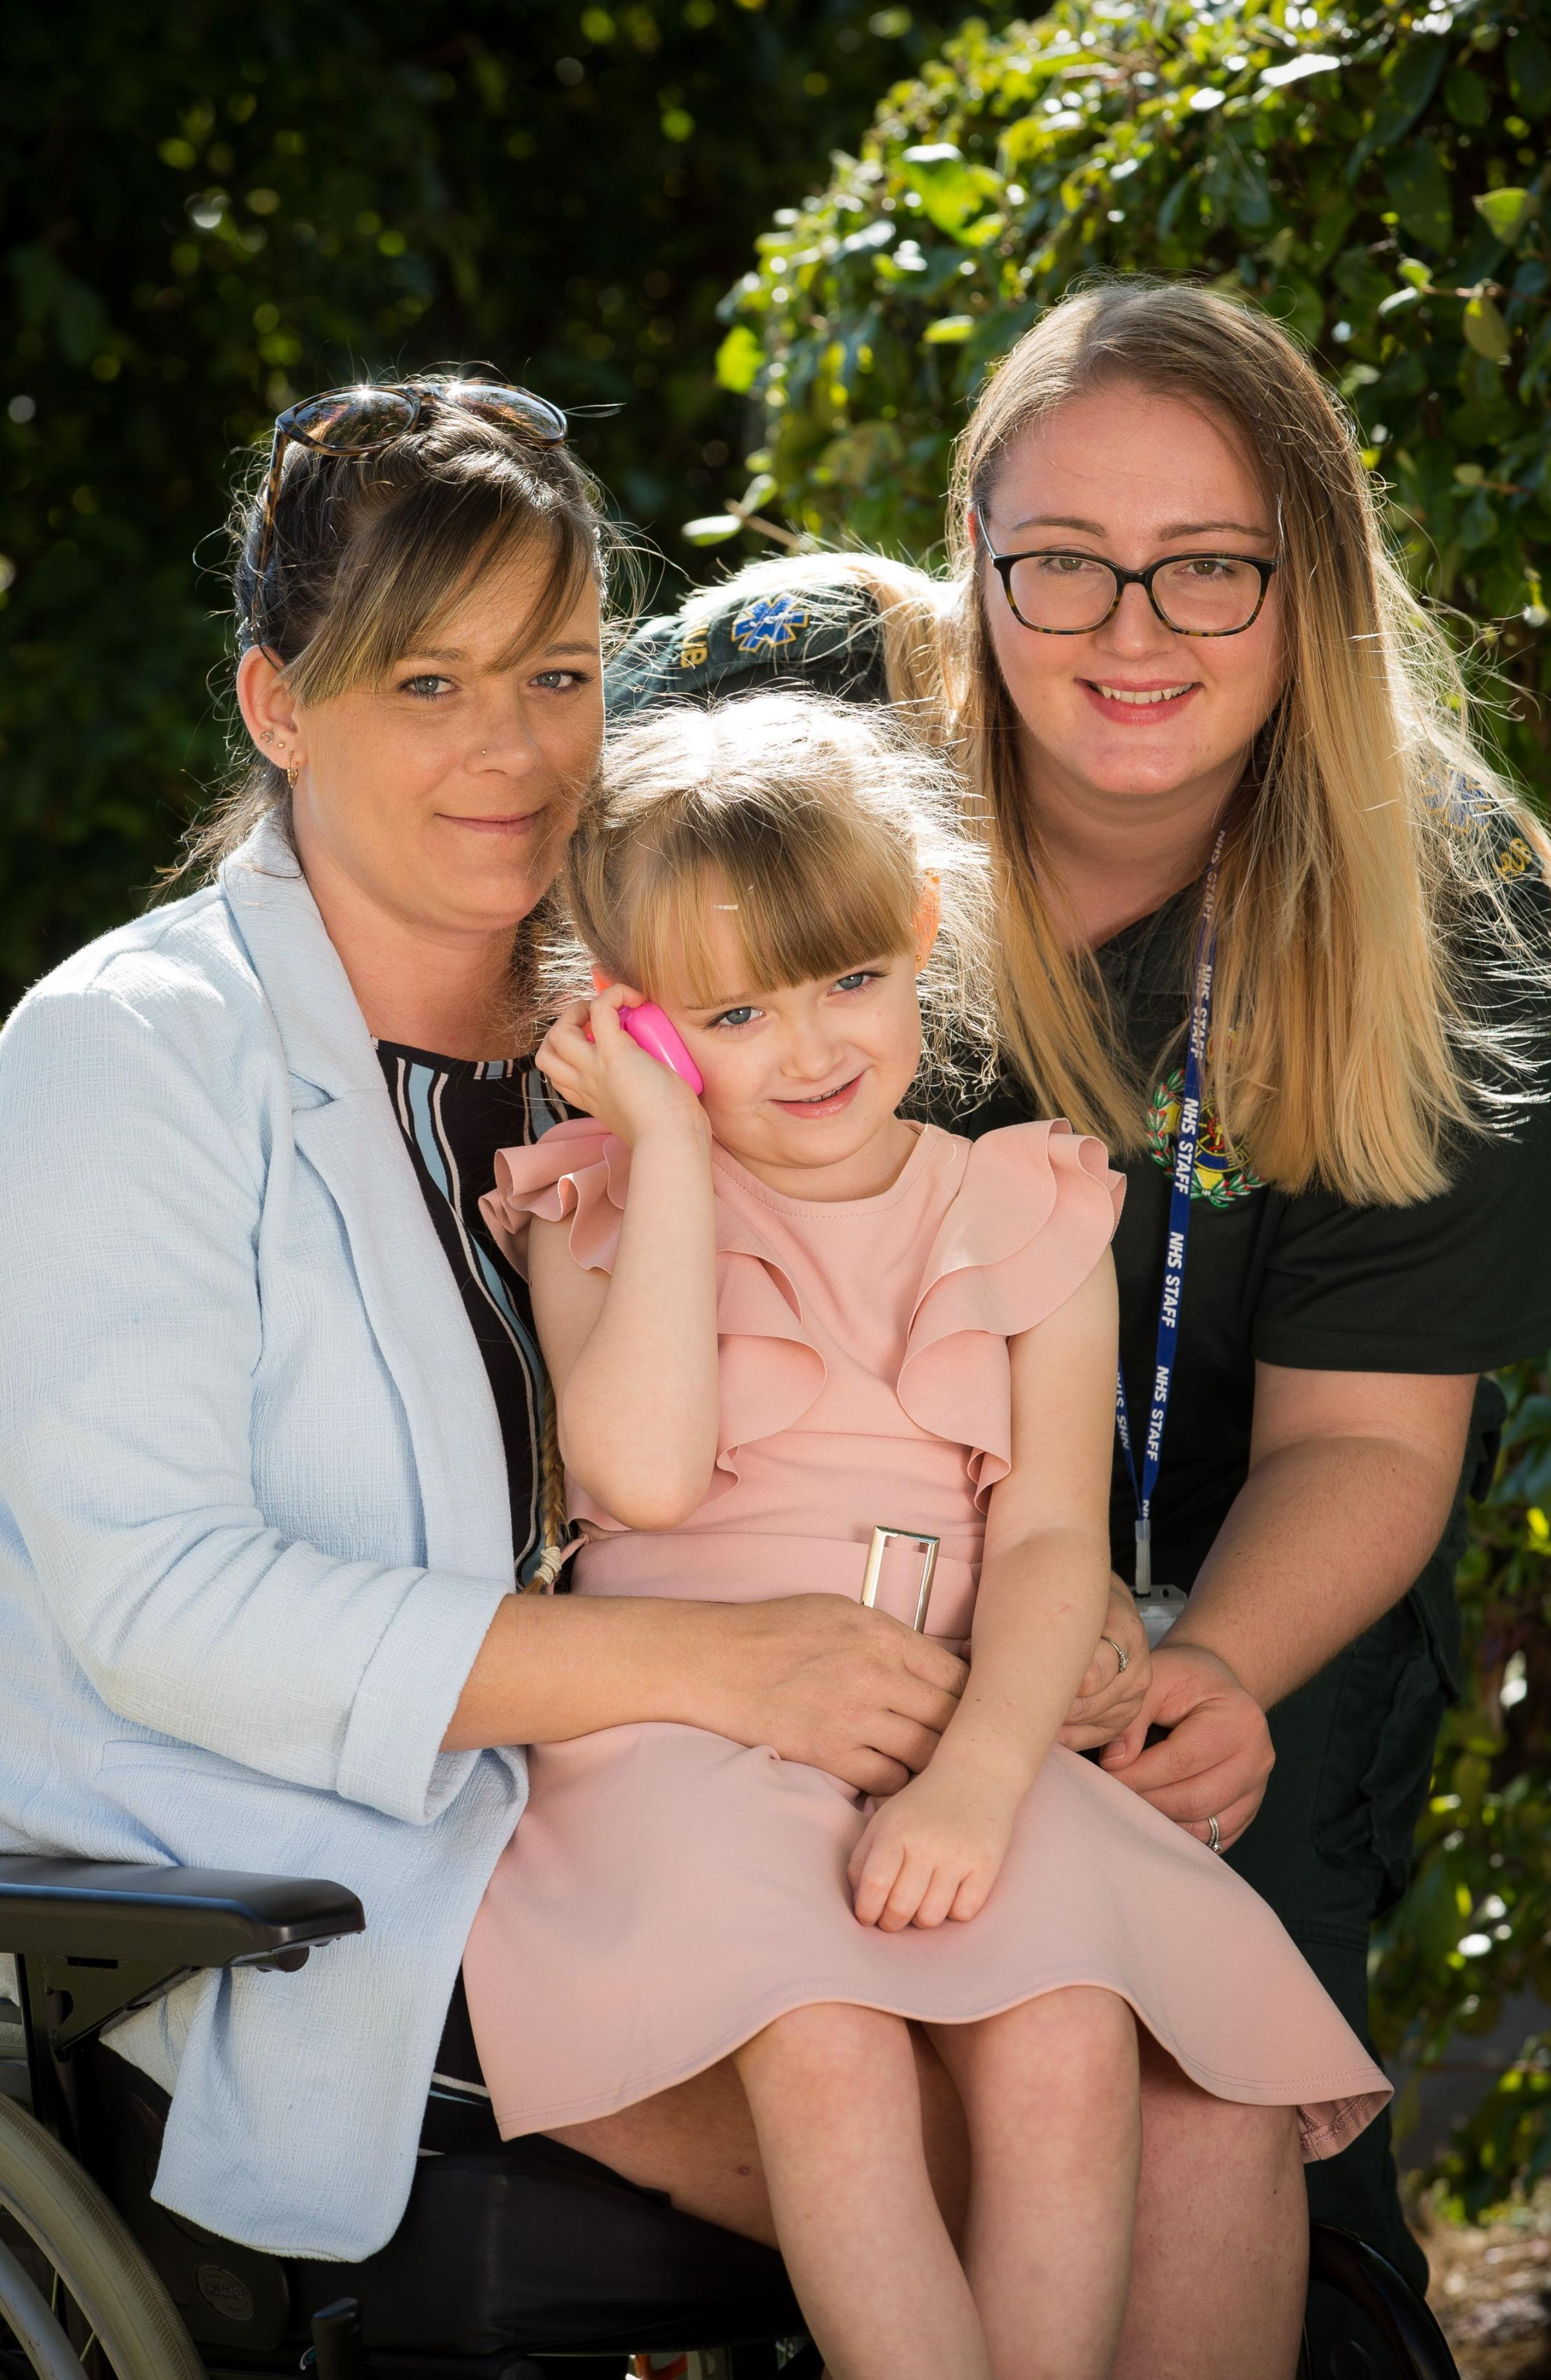 'Very brave': Four-year-old praised for saving mum's life